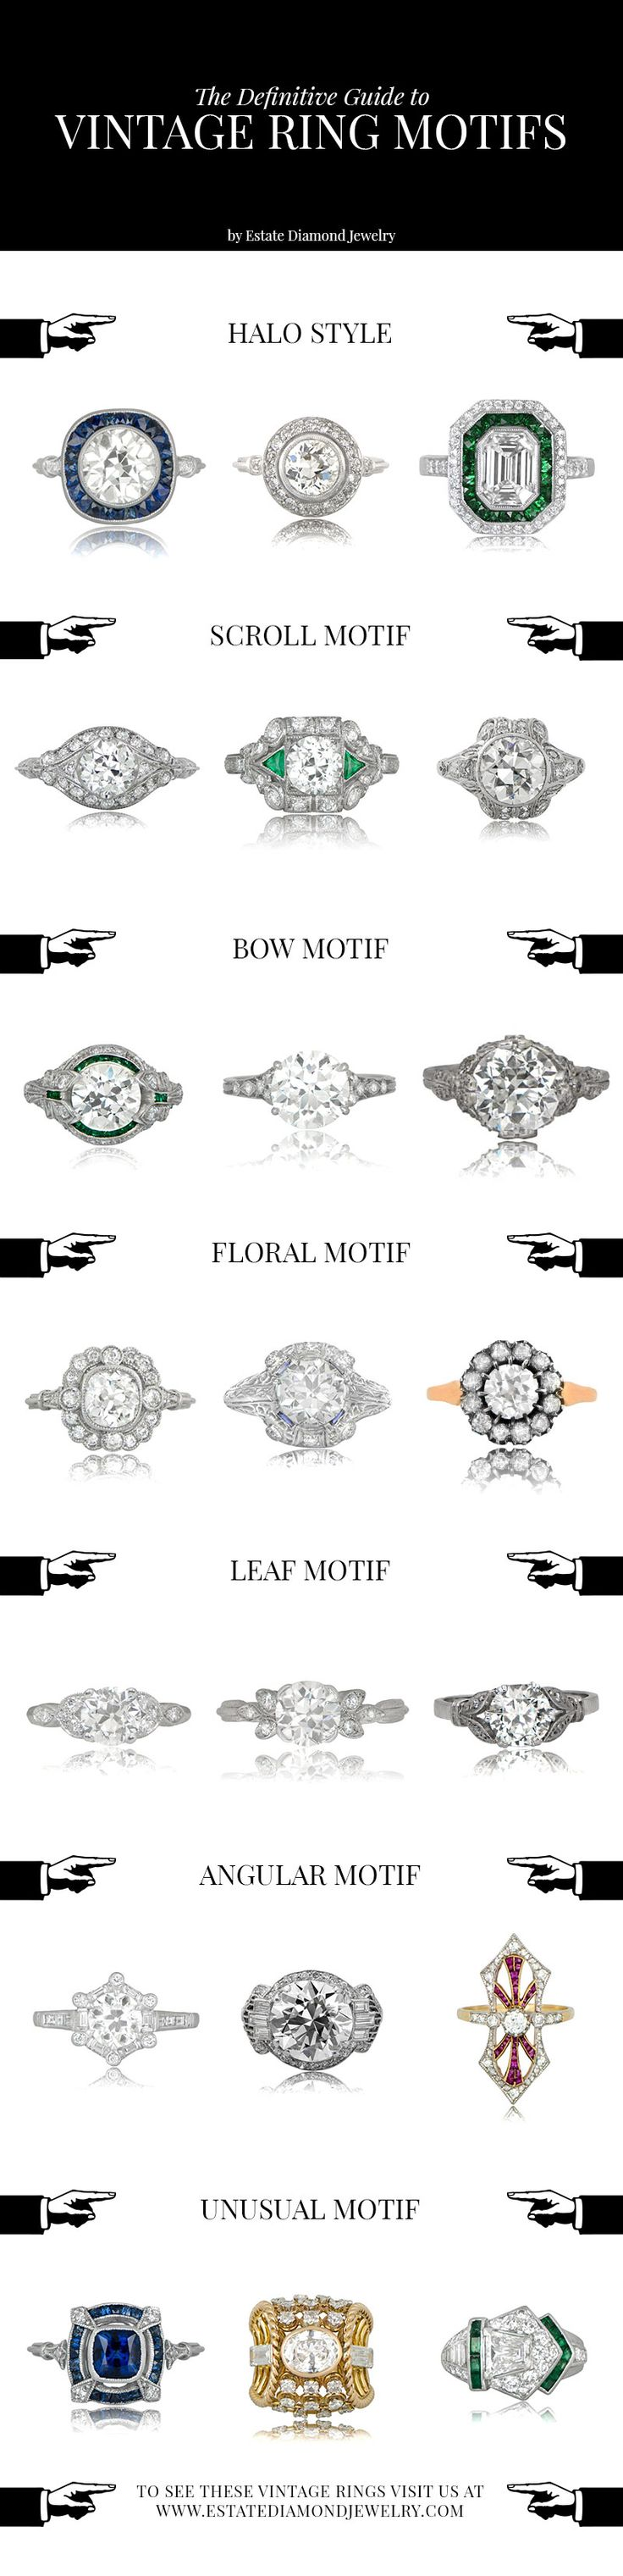 Vintage Engagement Rings Motifs. Take a look at all the styles of the rare and beautiful vintage engagement rings.